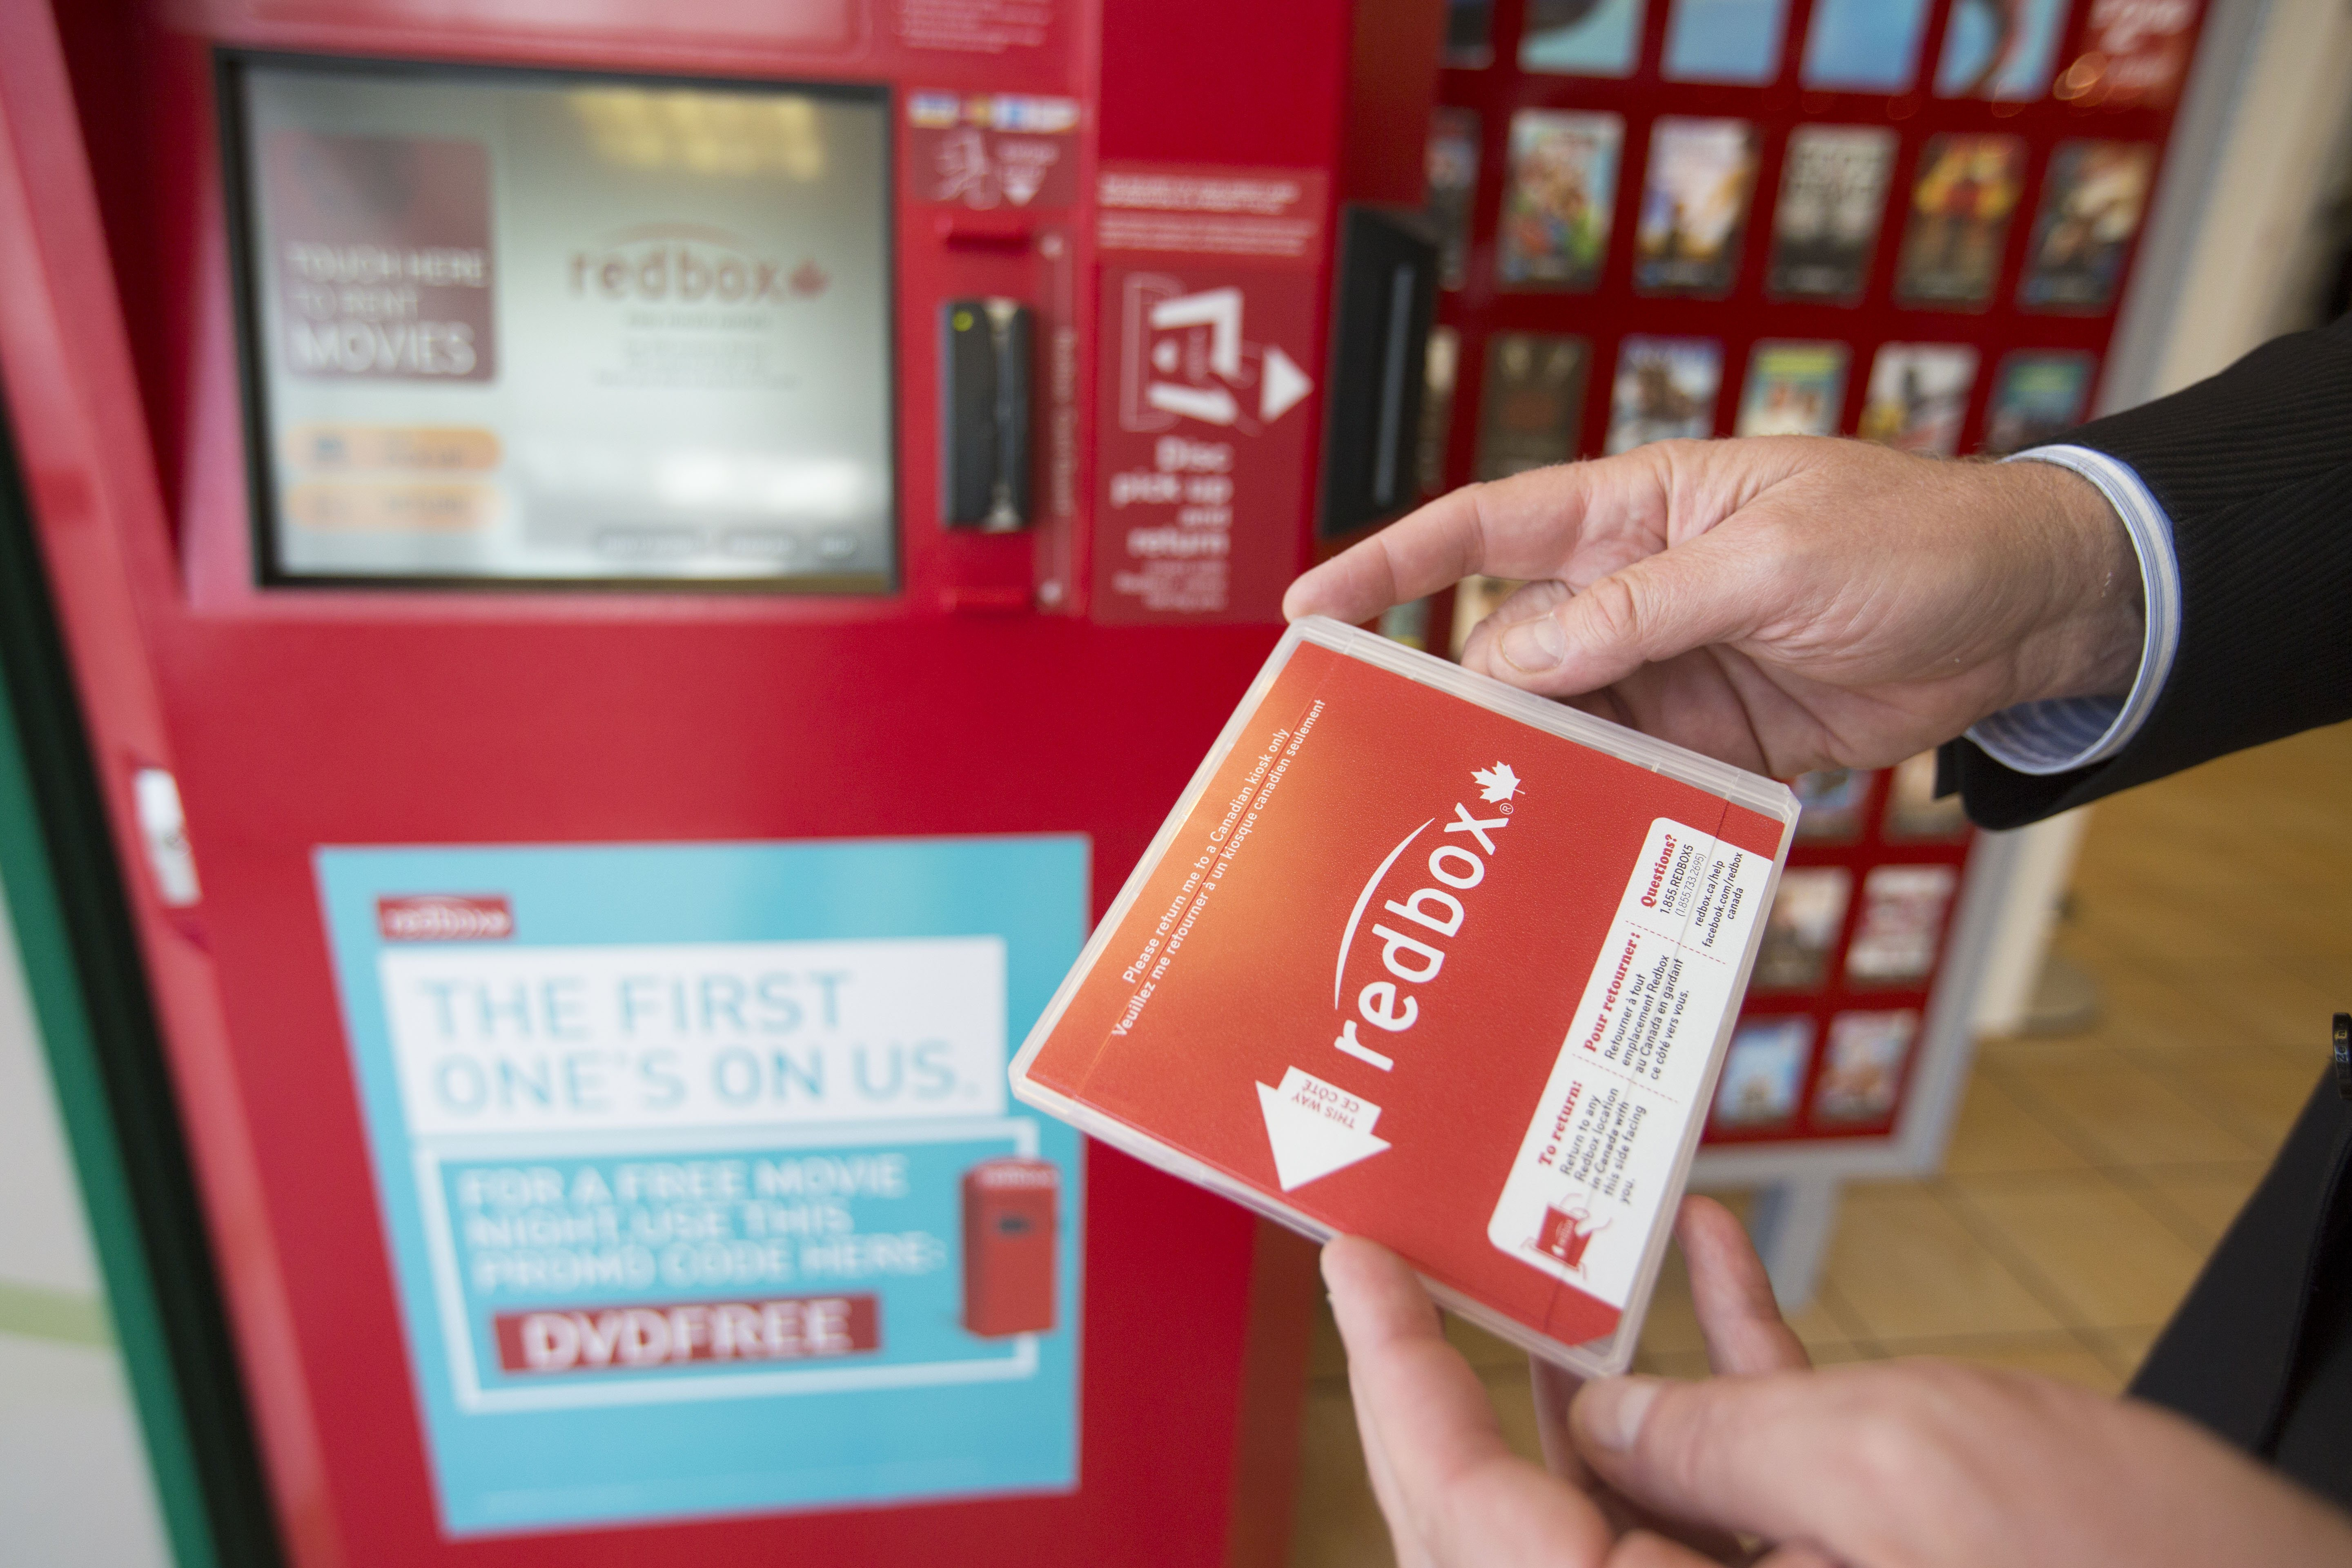 Redbox in Toronto, Canada on Aug. 26, 2014.